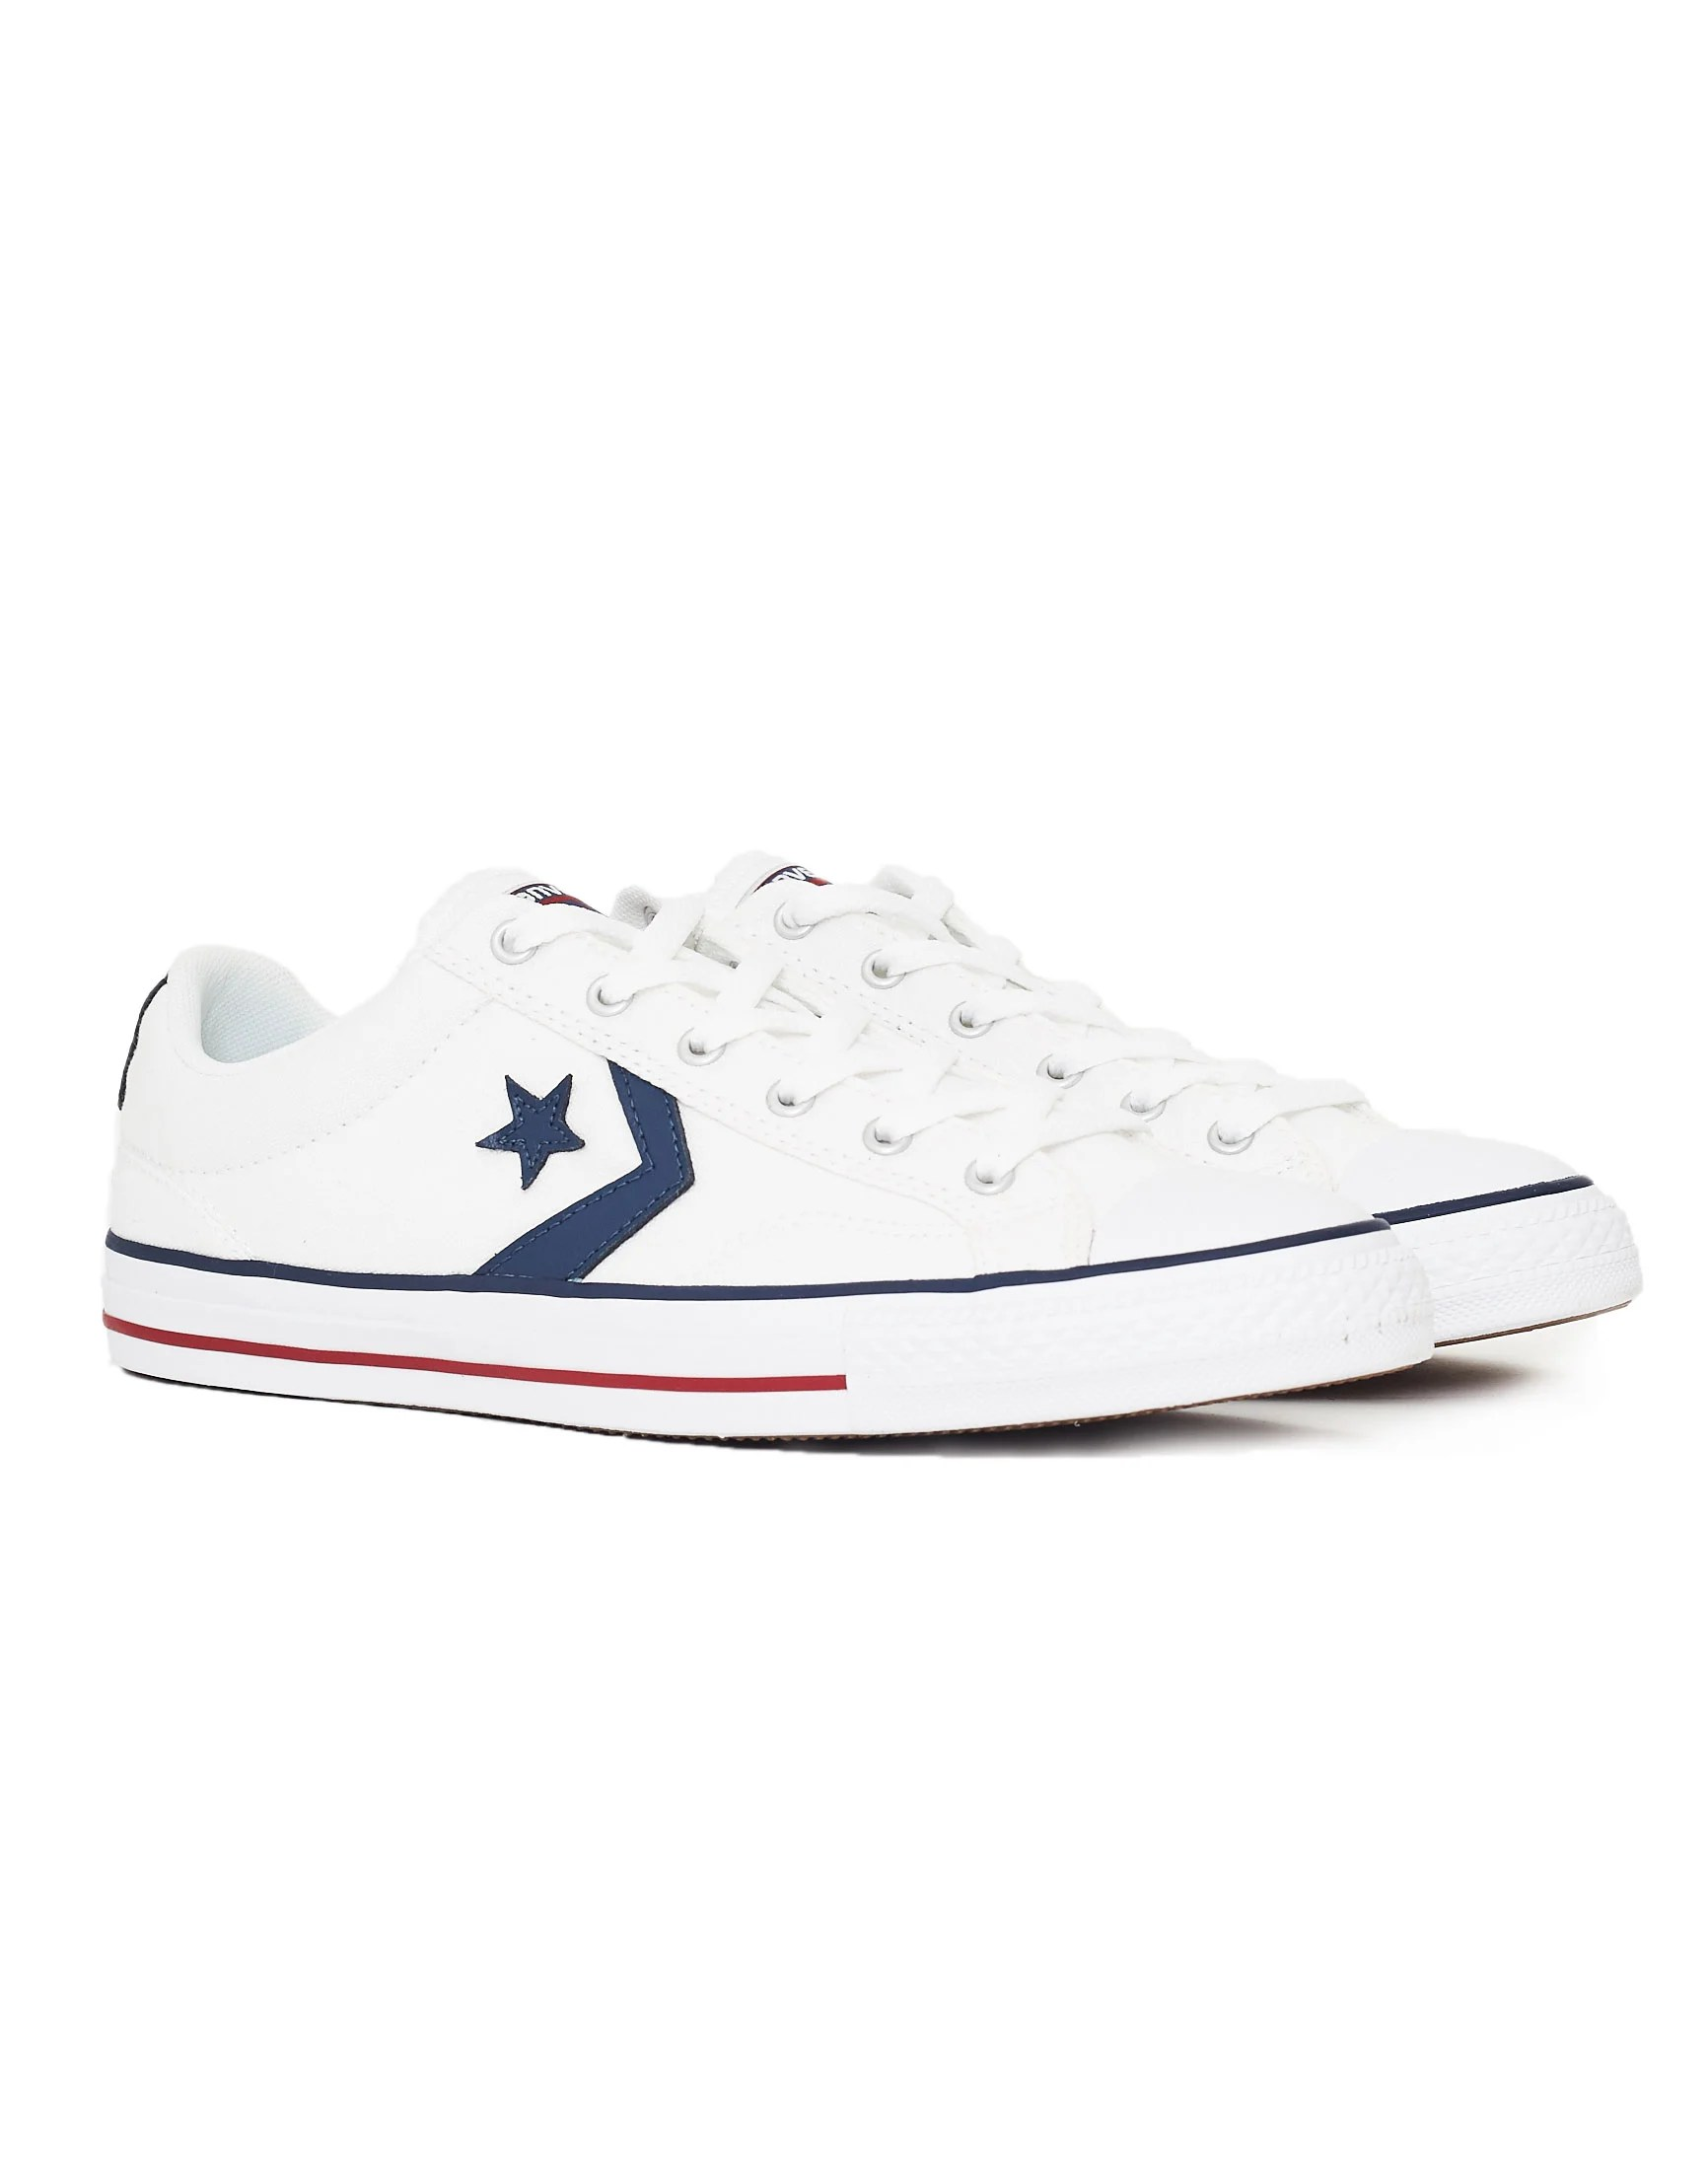 Buy Converse CONS Star Player Plimsolls White